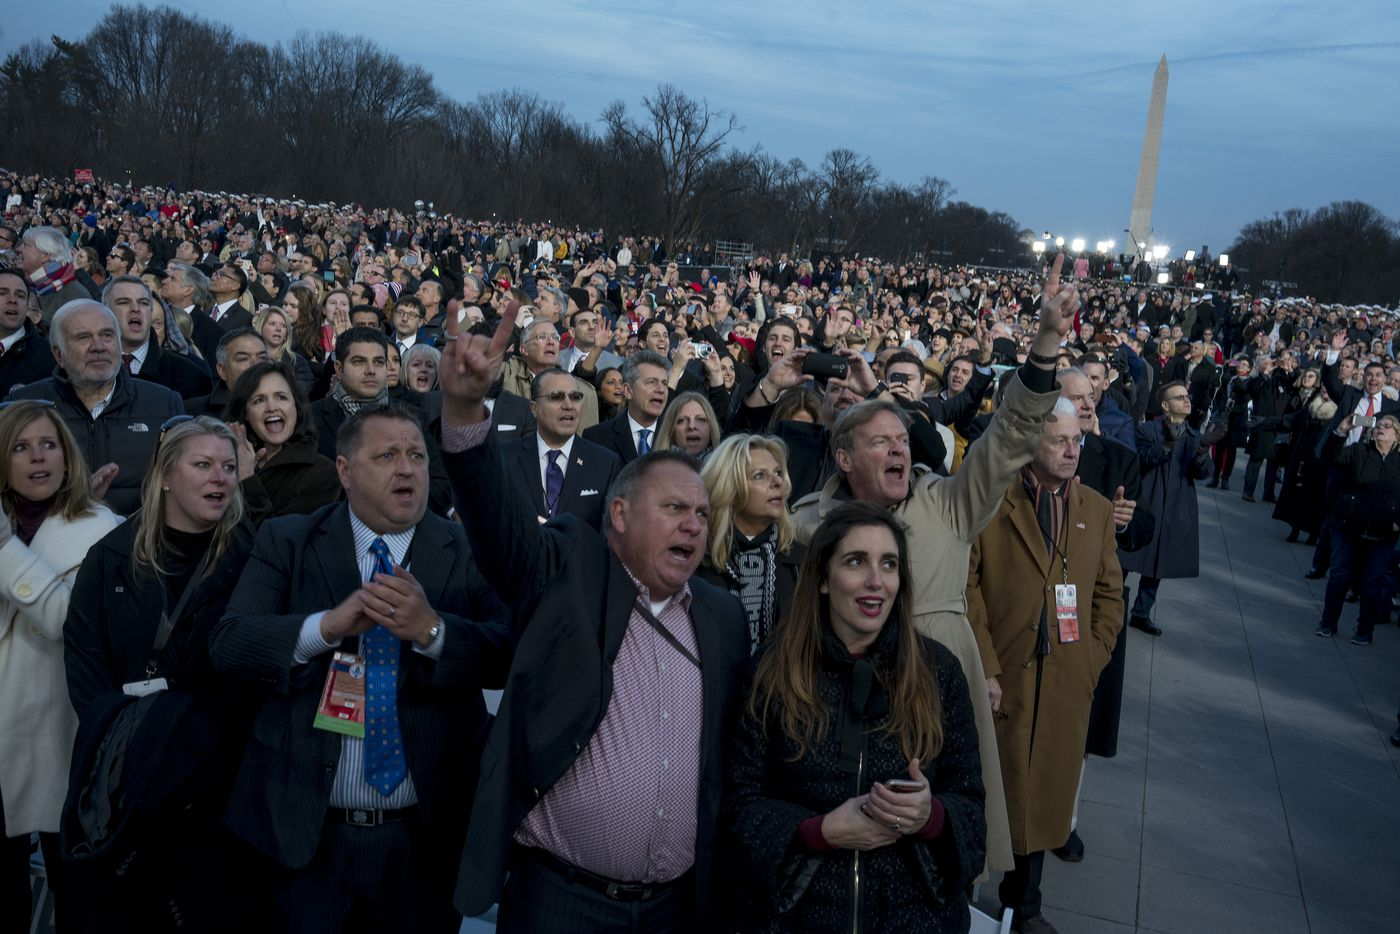 Guests cheer during the inauguration concert at the Lincoln Memorial January 19, 2017 in Washington, DC. Hundreds of thousands of people are expected tomorrow for Trump's inauguration as the 45th president of the United States.